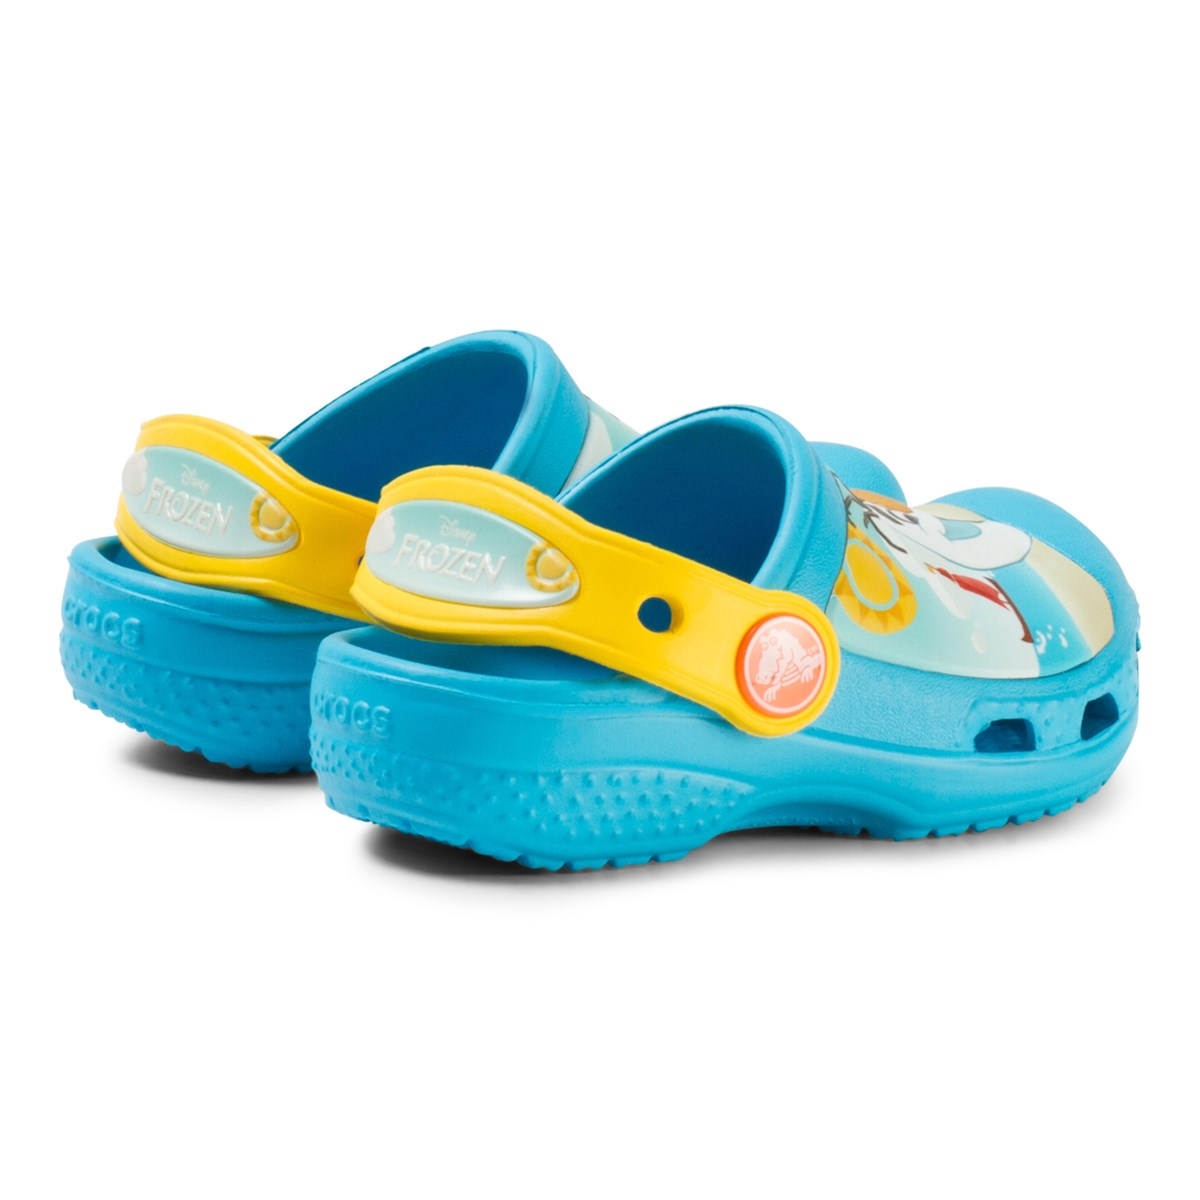 d82300730 Crocs - Creative Crocs Disney Frozen Olaf Clogs Electric Blue - Babyshop.com